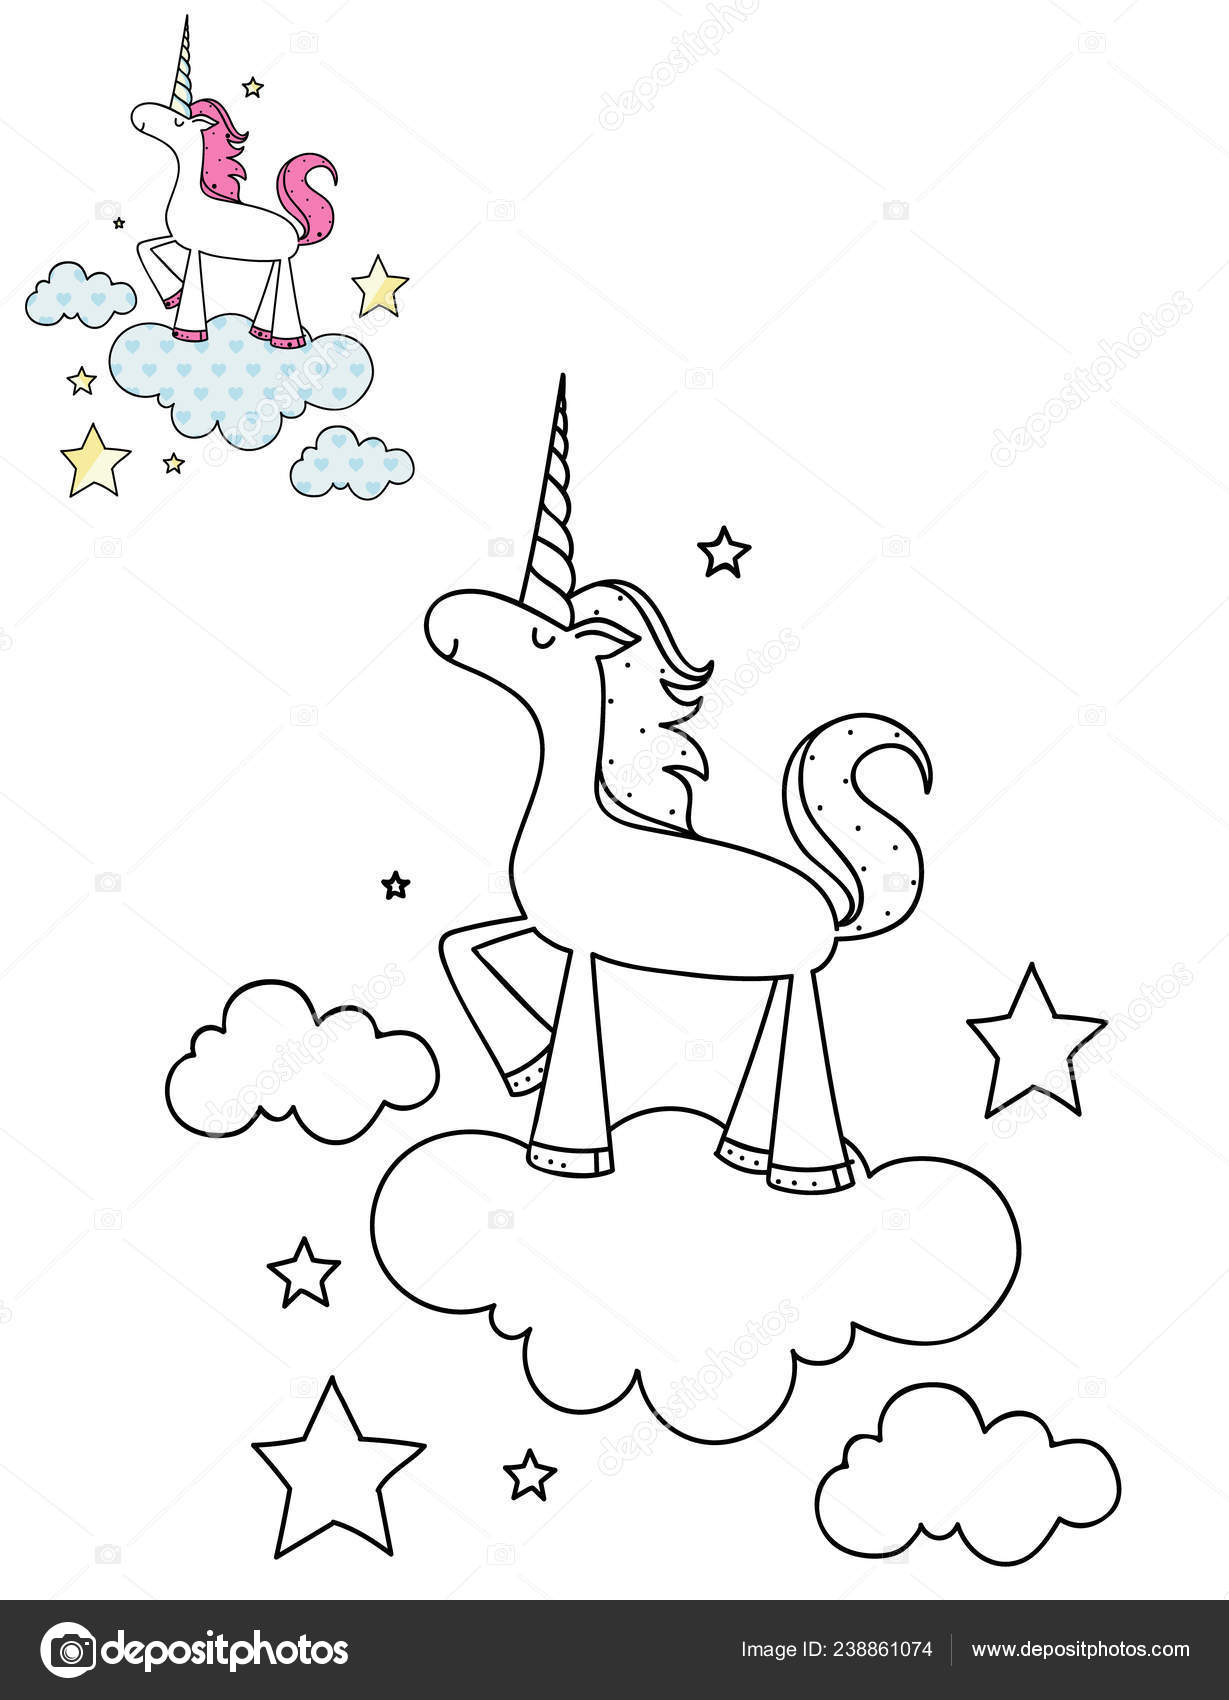 Coloring Page Outline Cartoon Cute Unicorn Cloud Hand Drawn Vector ...